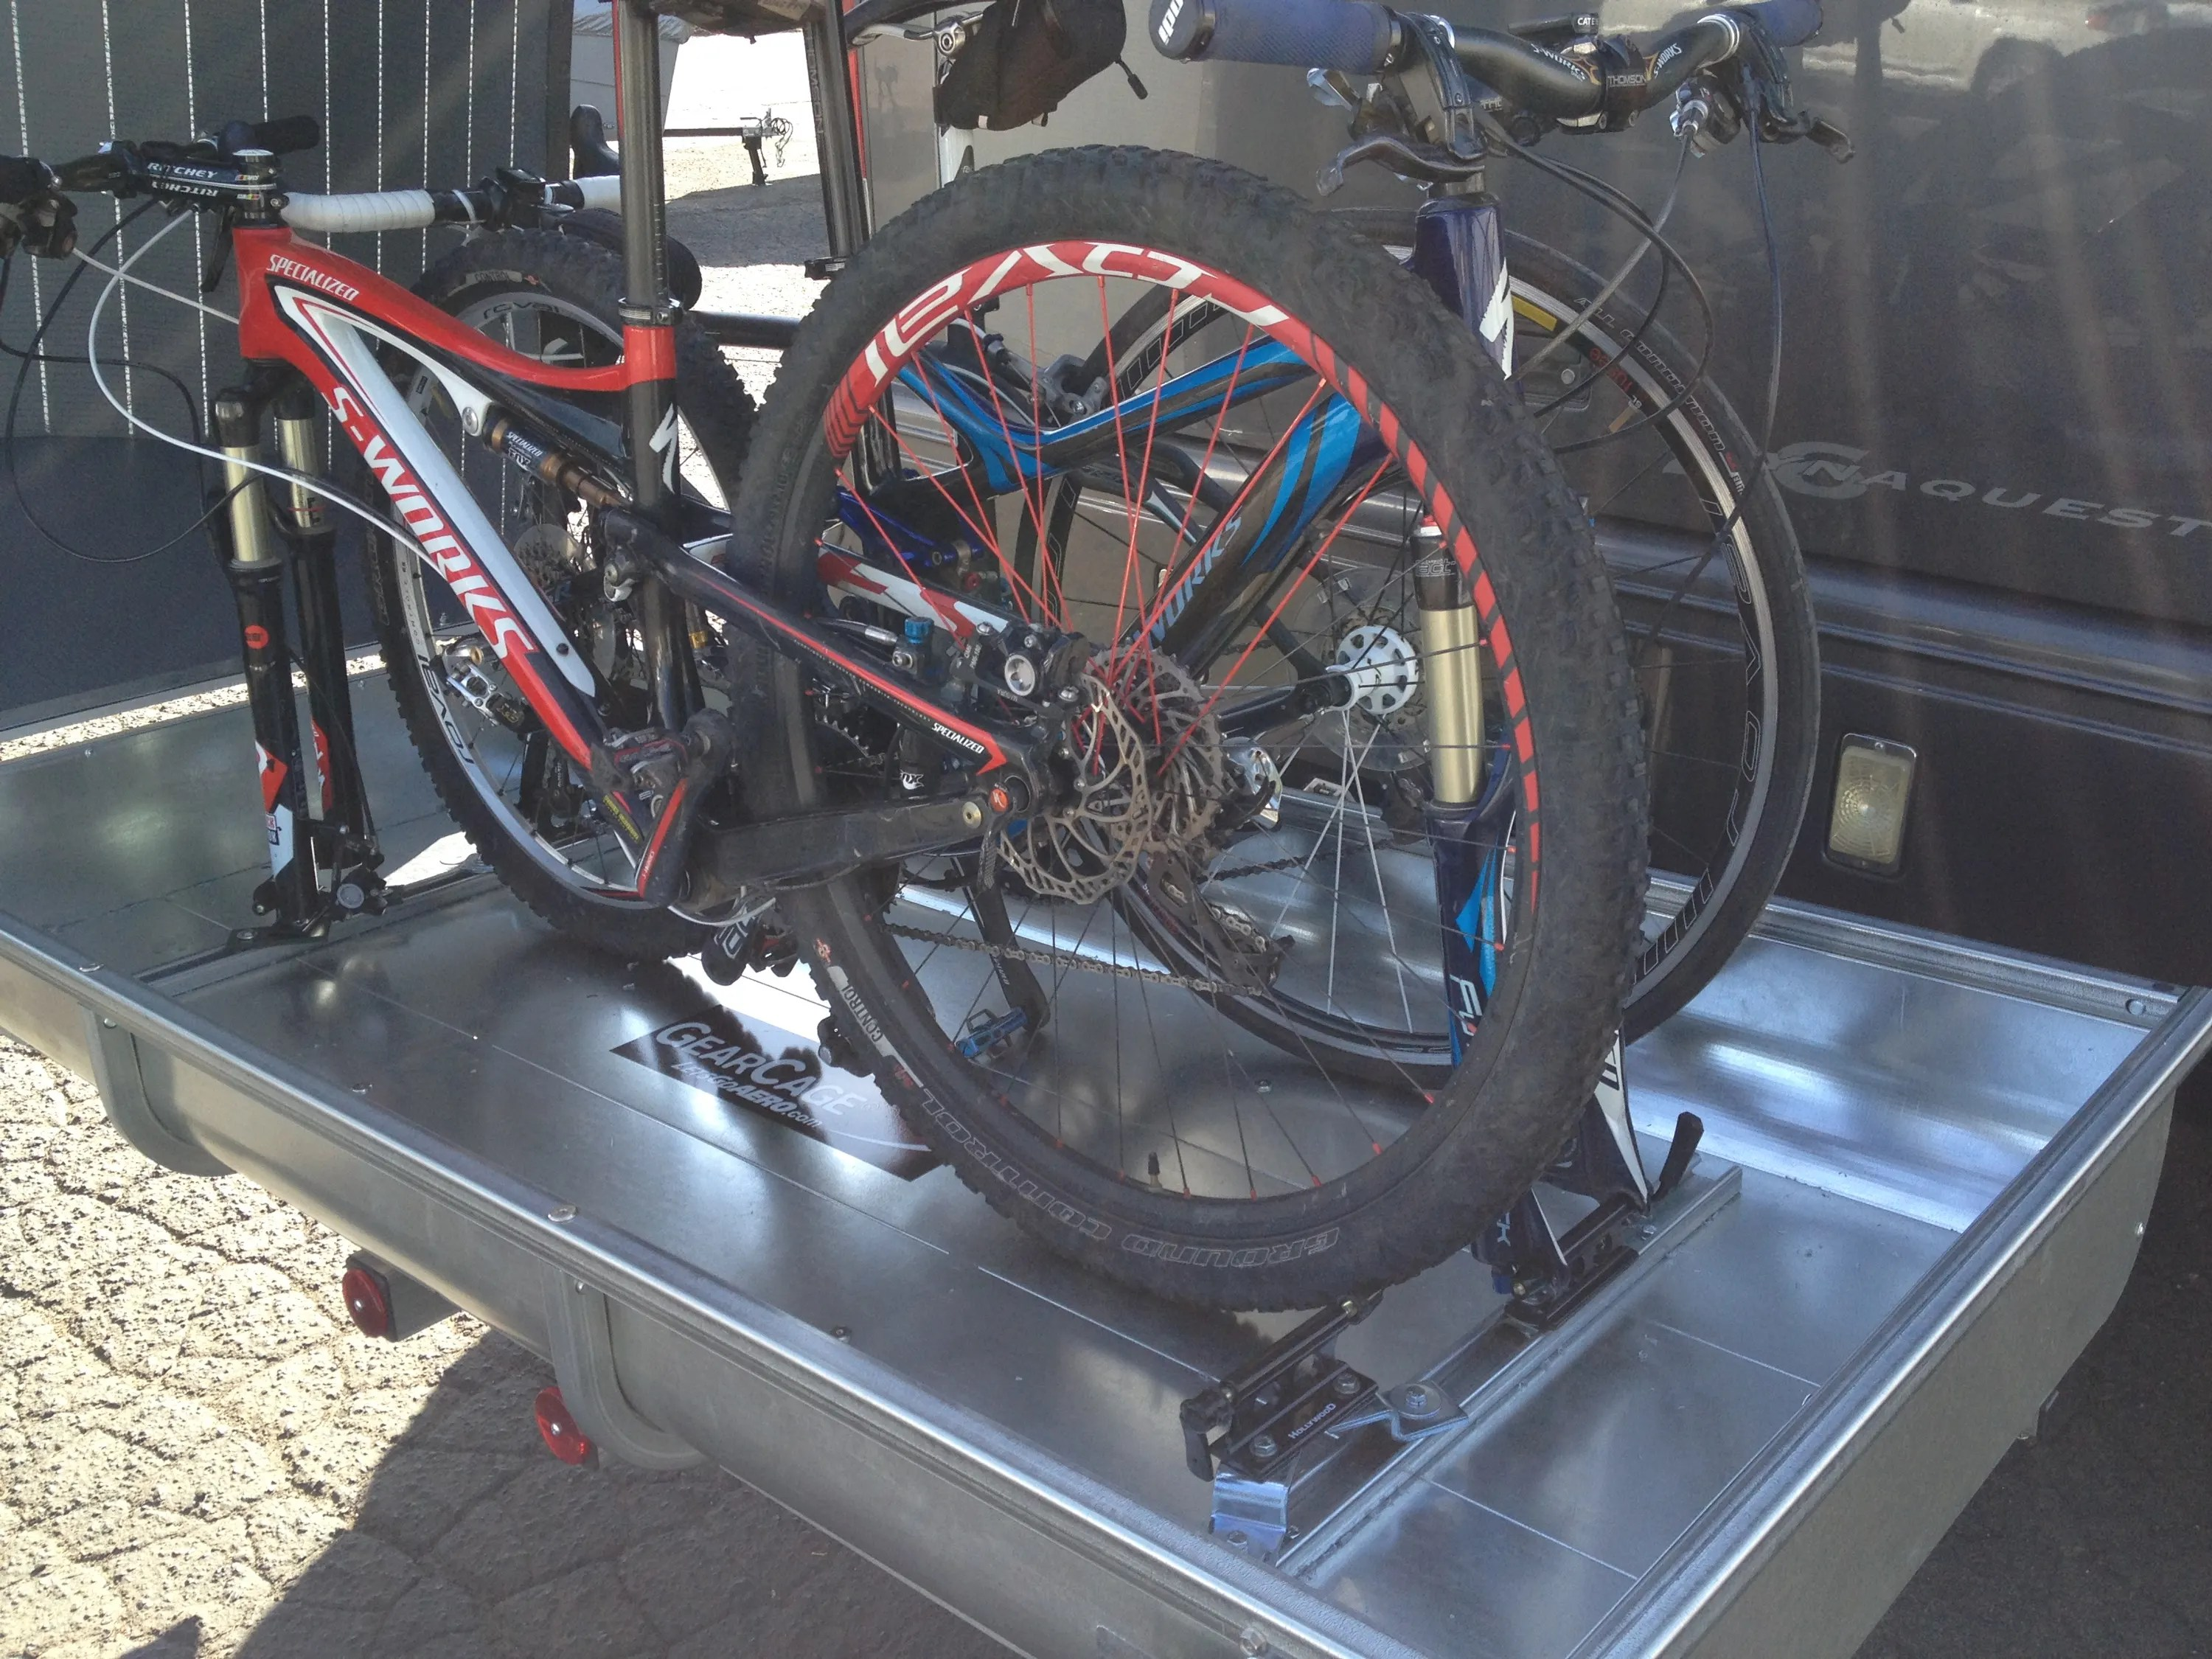 enclosed bicycle hitch carrier holds an